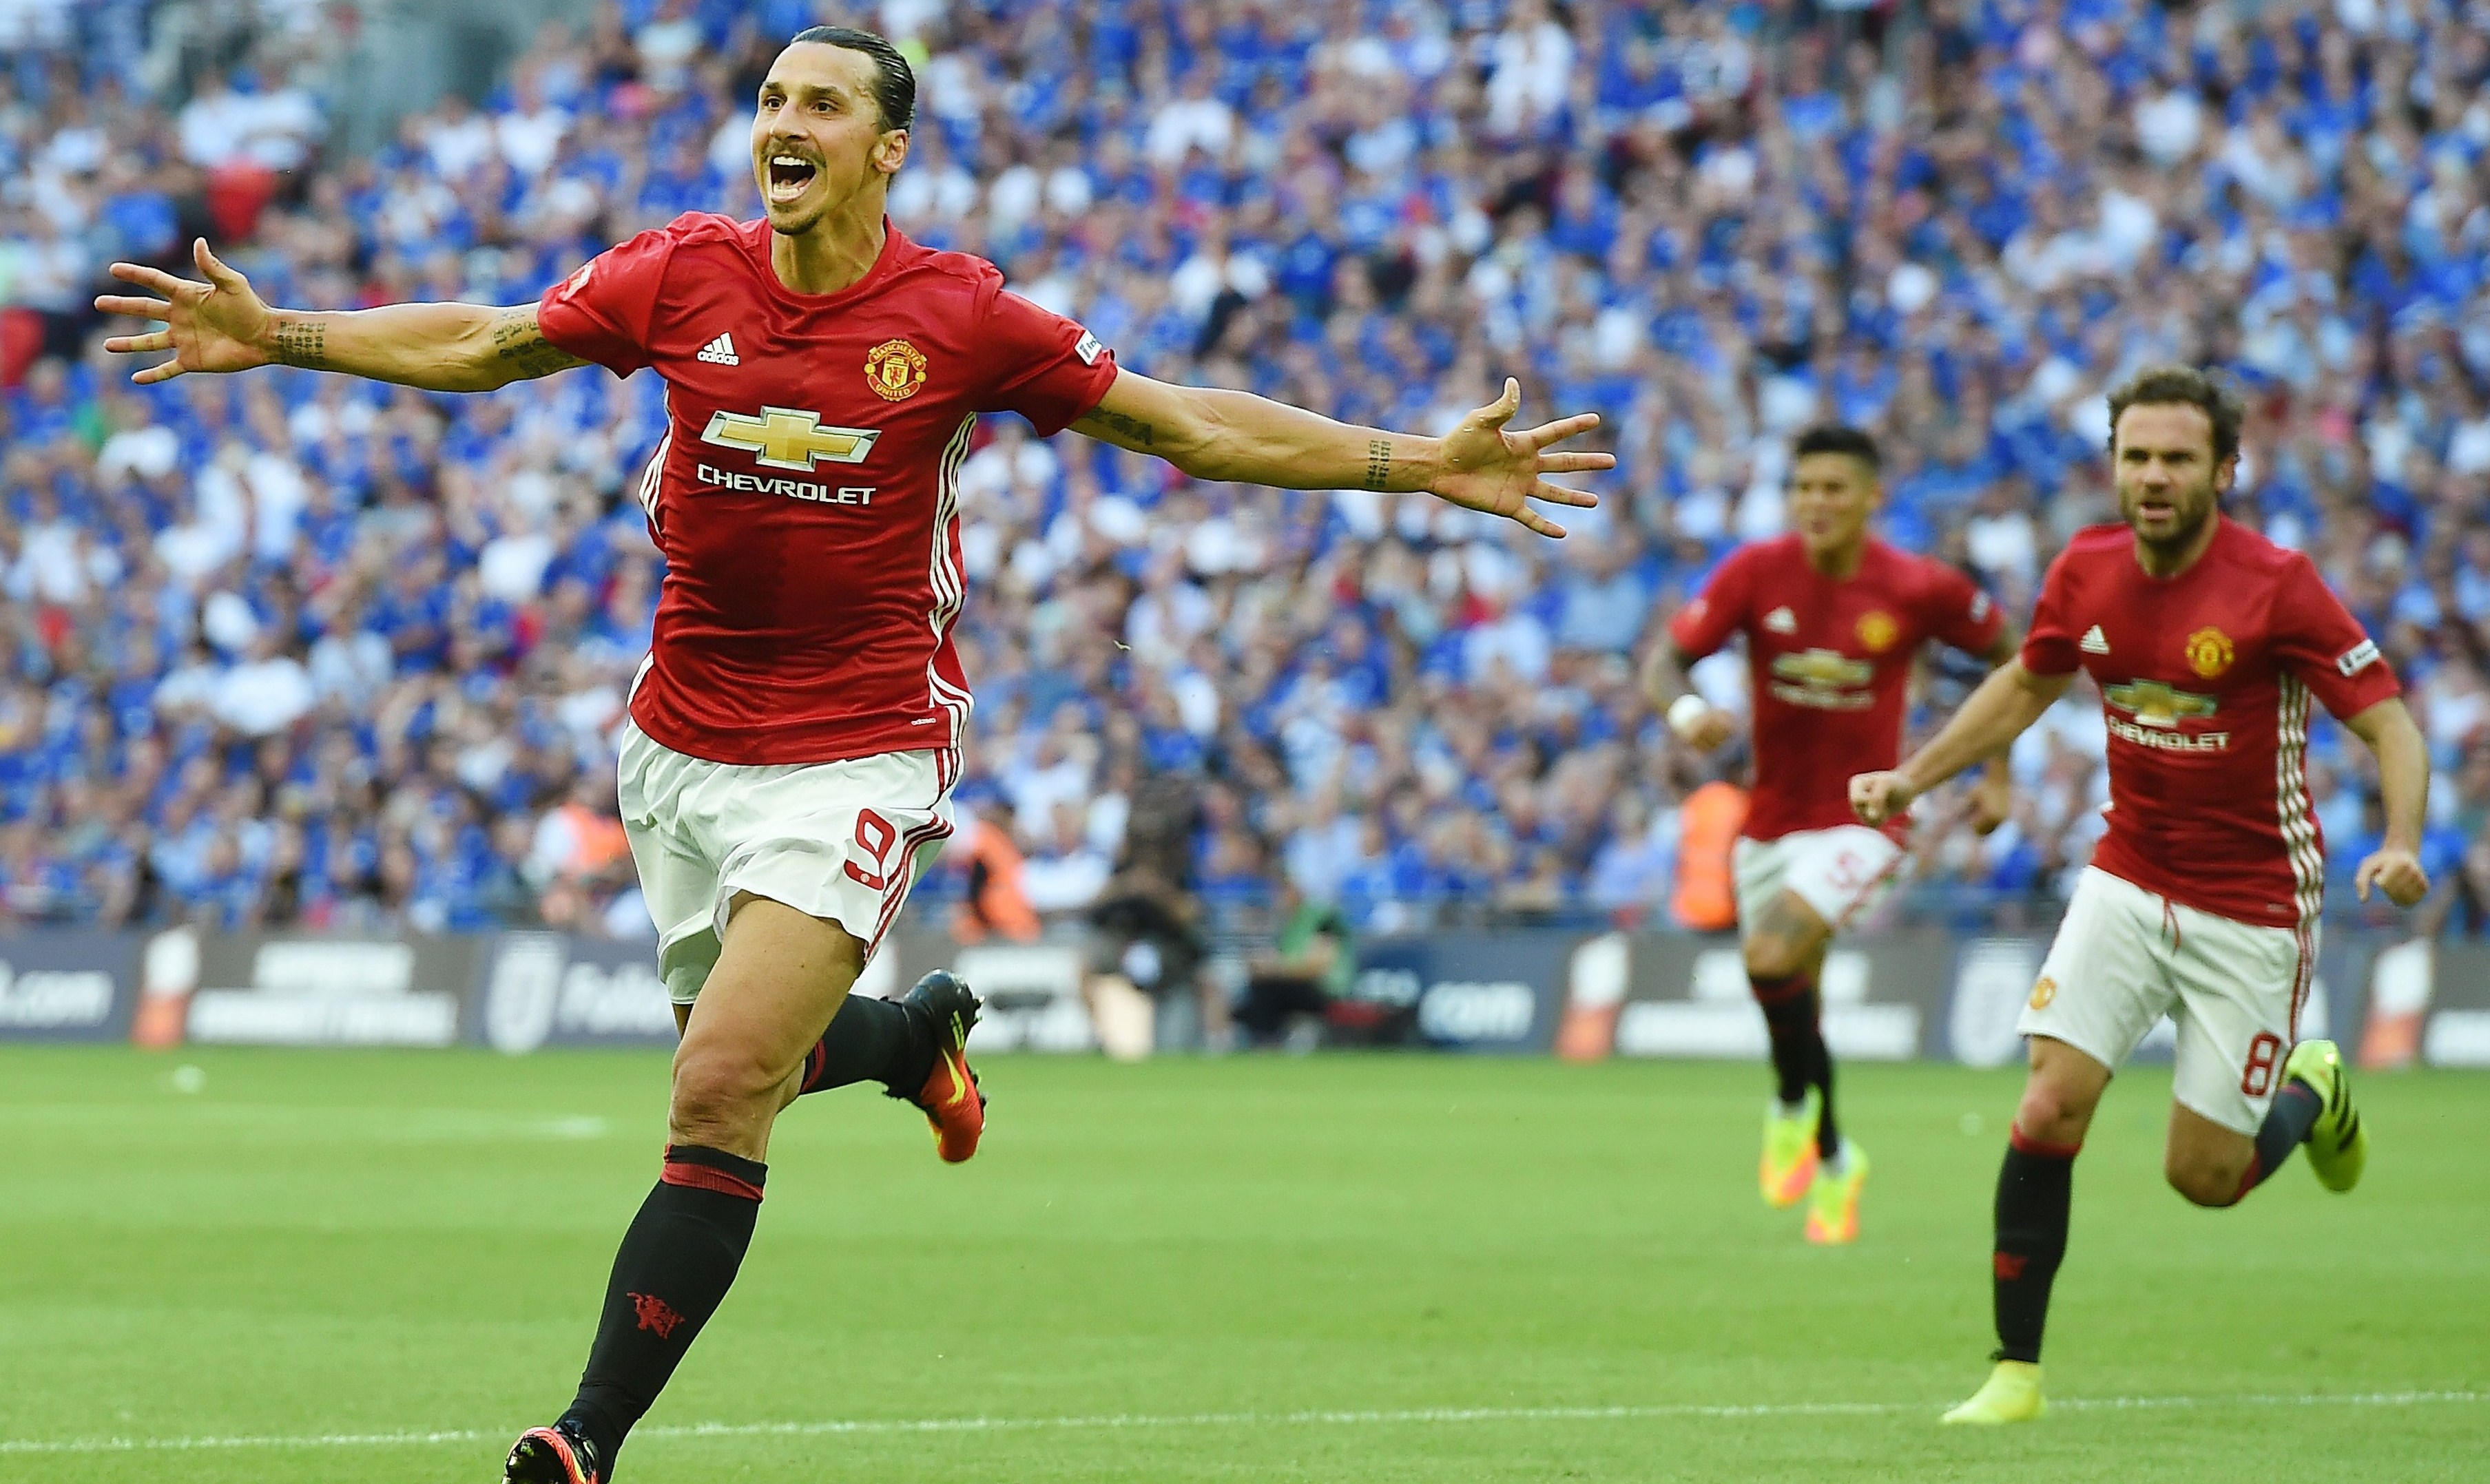 ARA1. London (United Kingdom), 07/08/2016.- Man Utd's Zlatan Ibrahimovic celebrates after scoring against Leicester during the FA Community Shield between Manchester United and Leicester City at Wembley Stadium in London, Britain, 07 August 2016. (Londres) EFE/EPA/ANDY RAIN